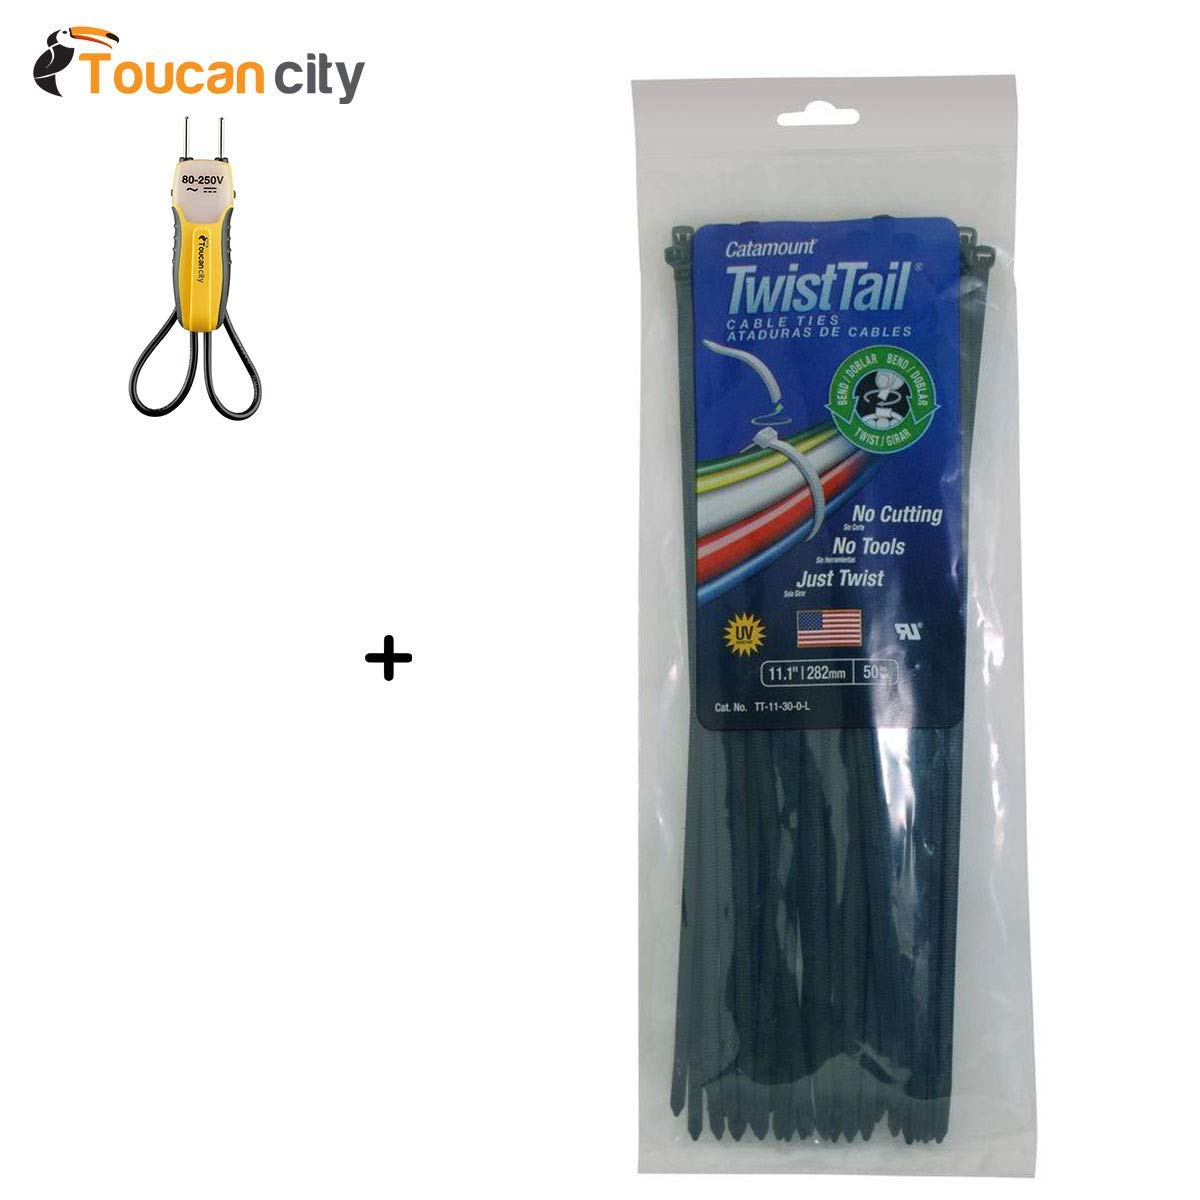 Toucan City Voltage Tester and Catamount 11 in. 30 lb. TwistTail Cable Tie, Black (Case of 20 Bags / 50 Ties per Bag) TT-11-30-0-L